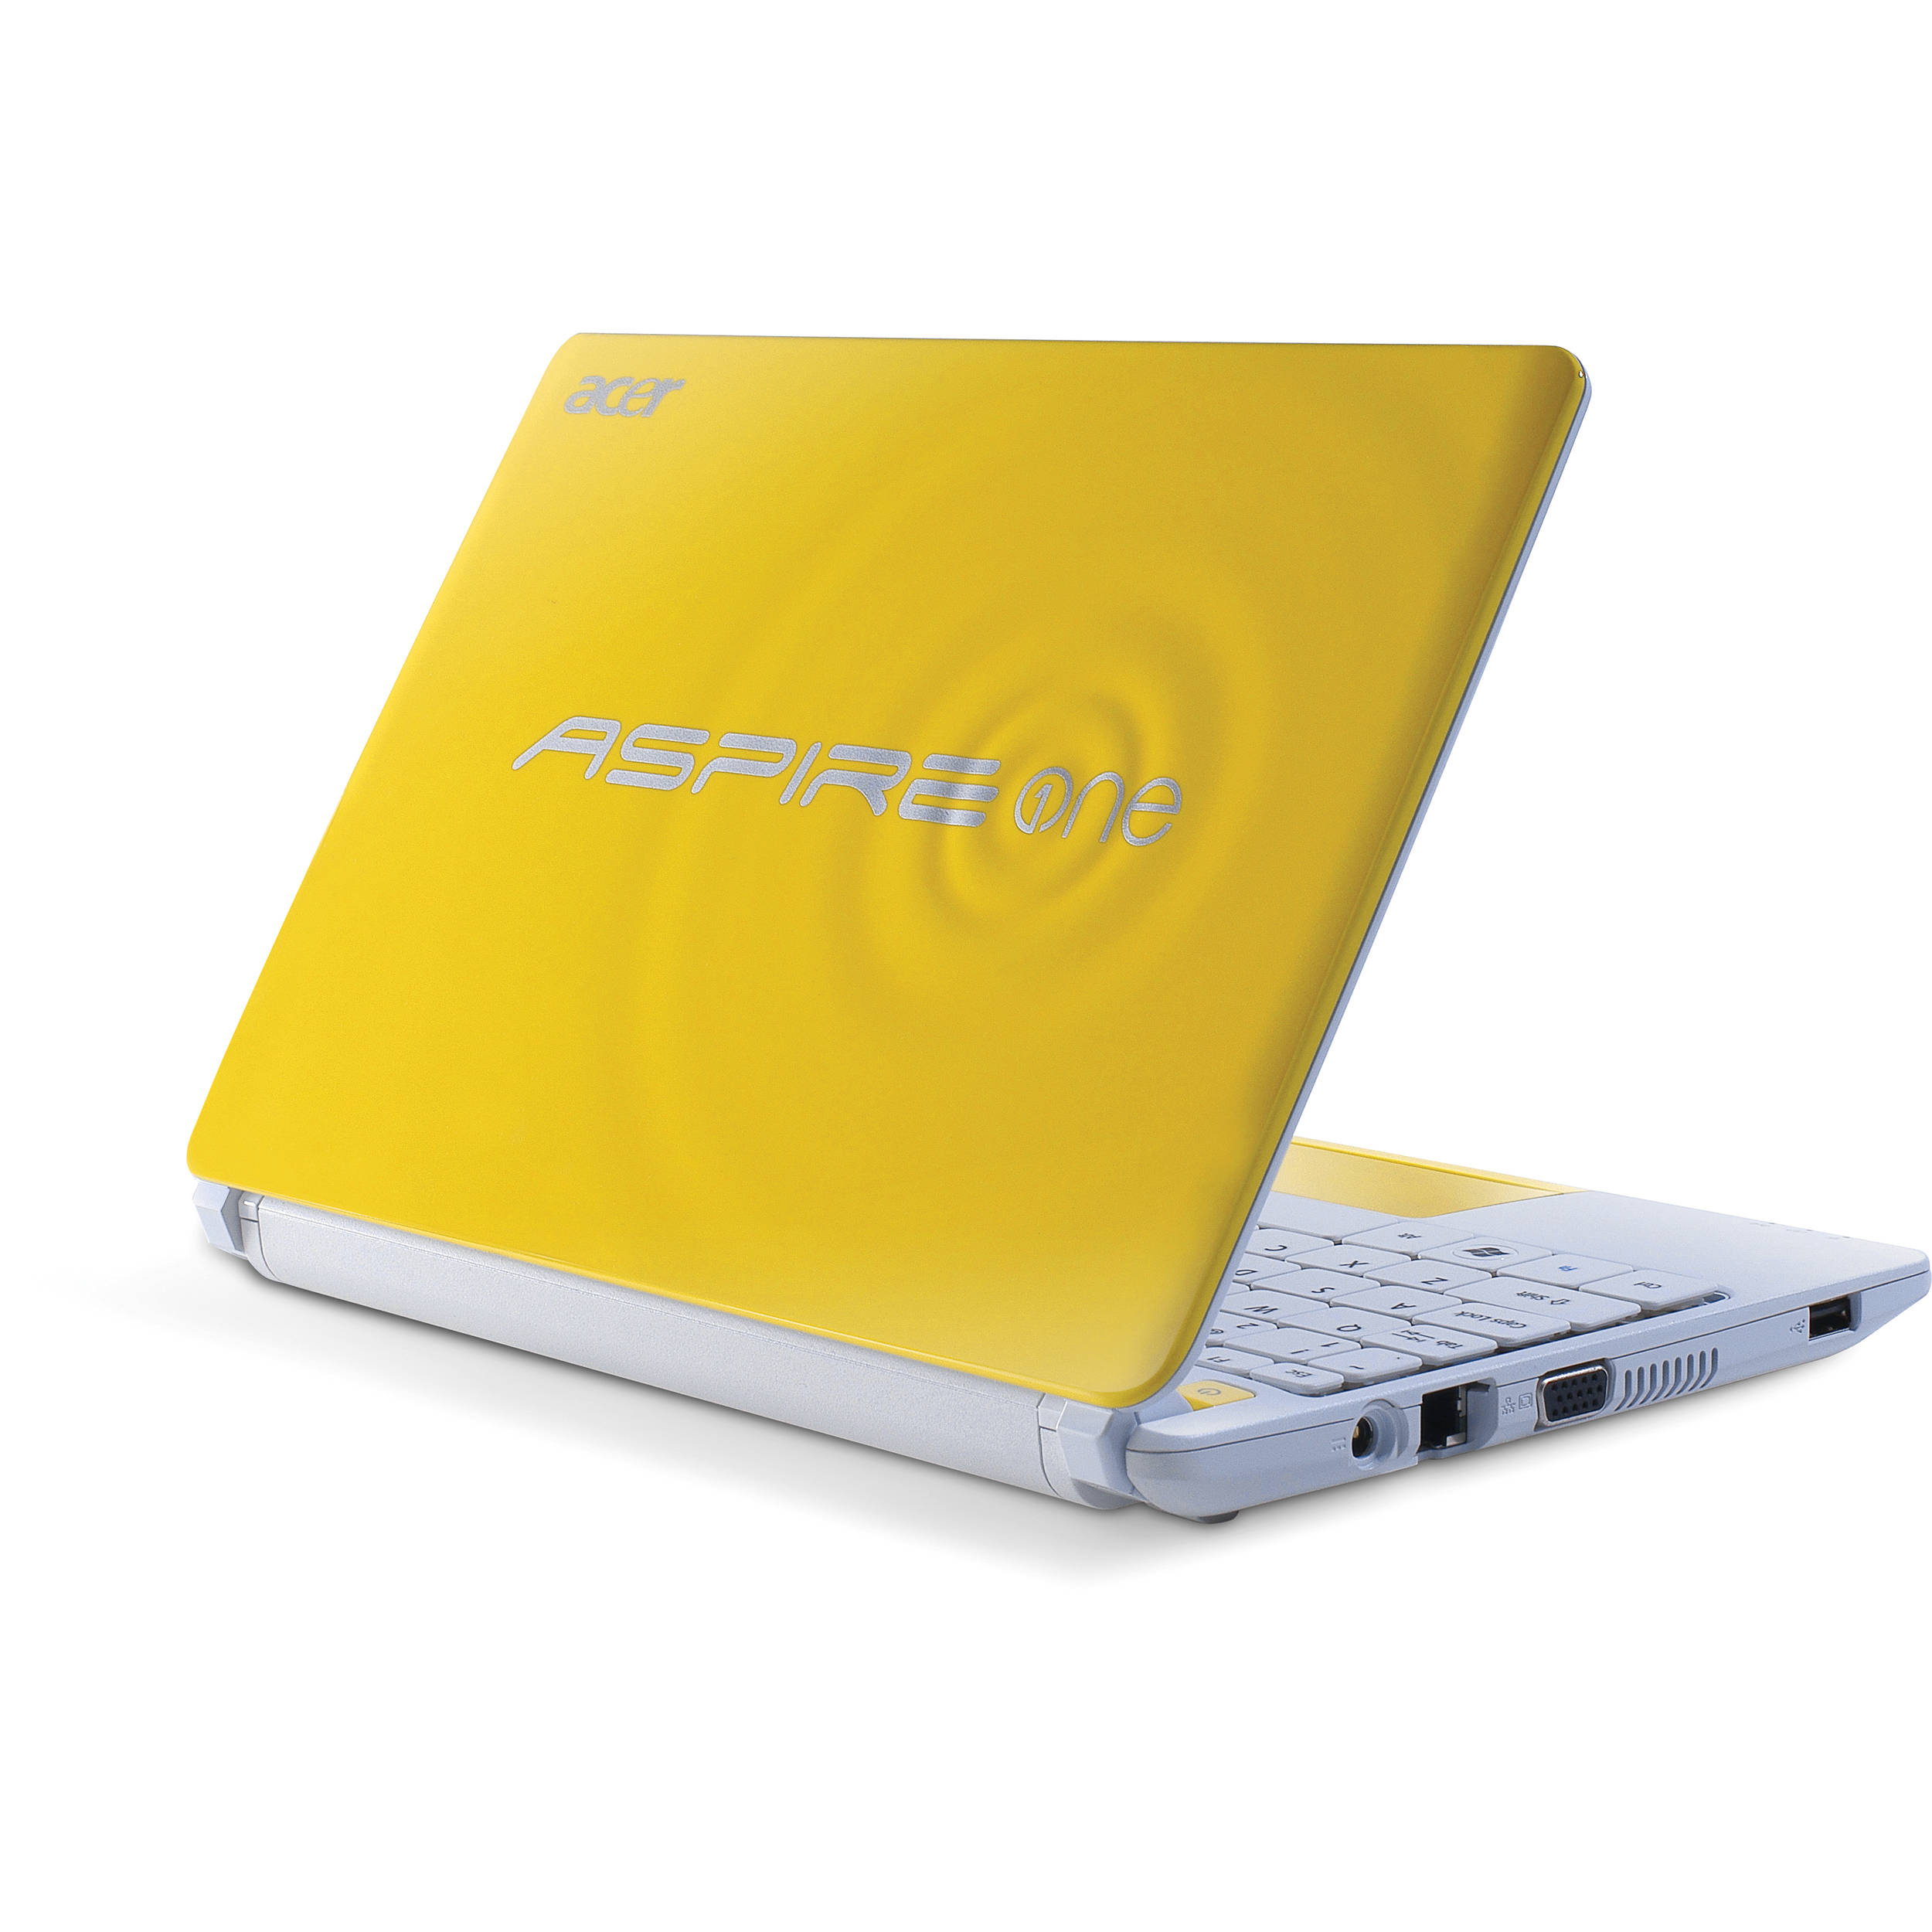 Acer Aspire One Drivers for Windows 10 8 7 Vista XP